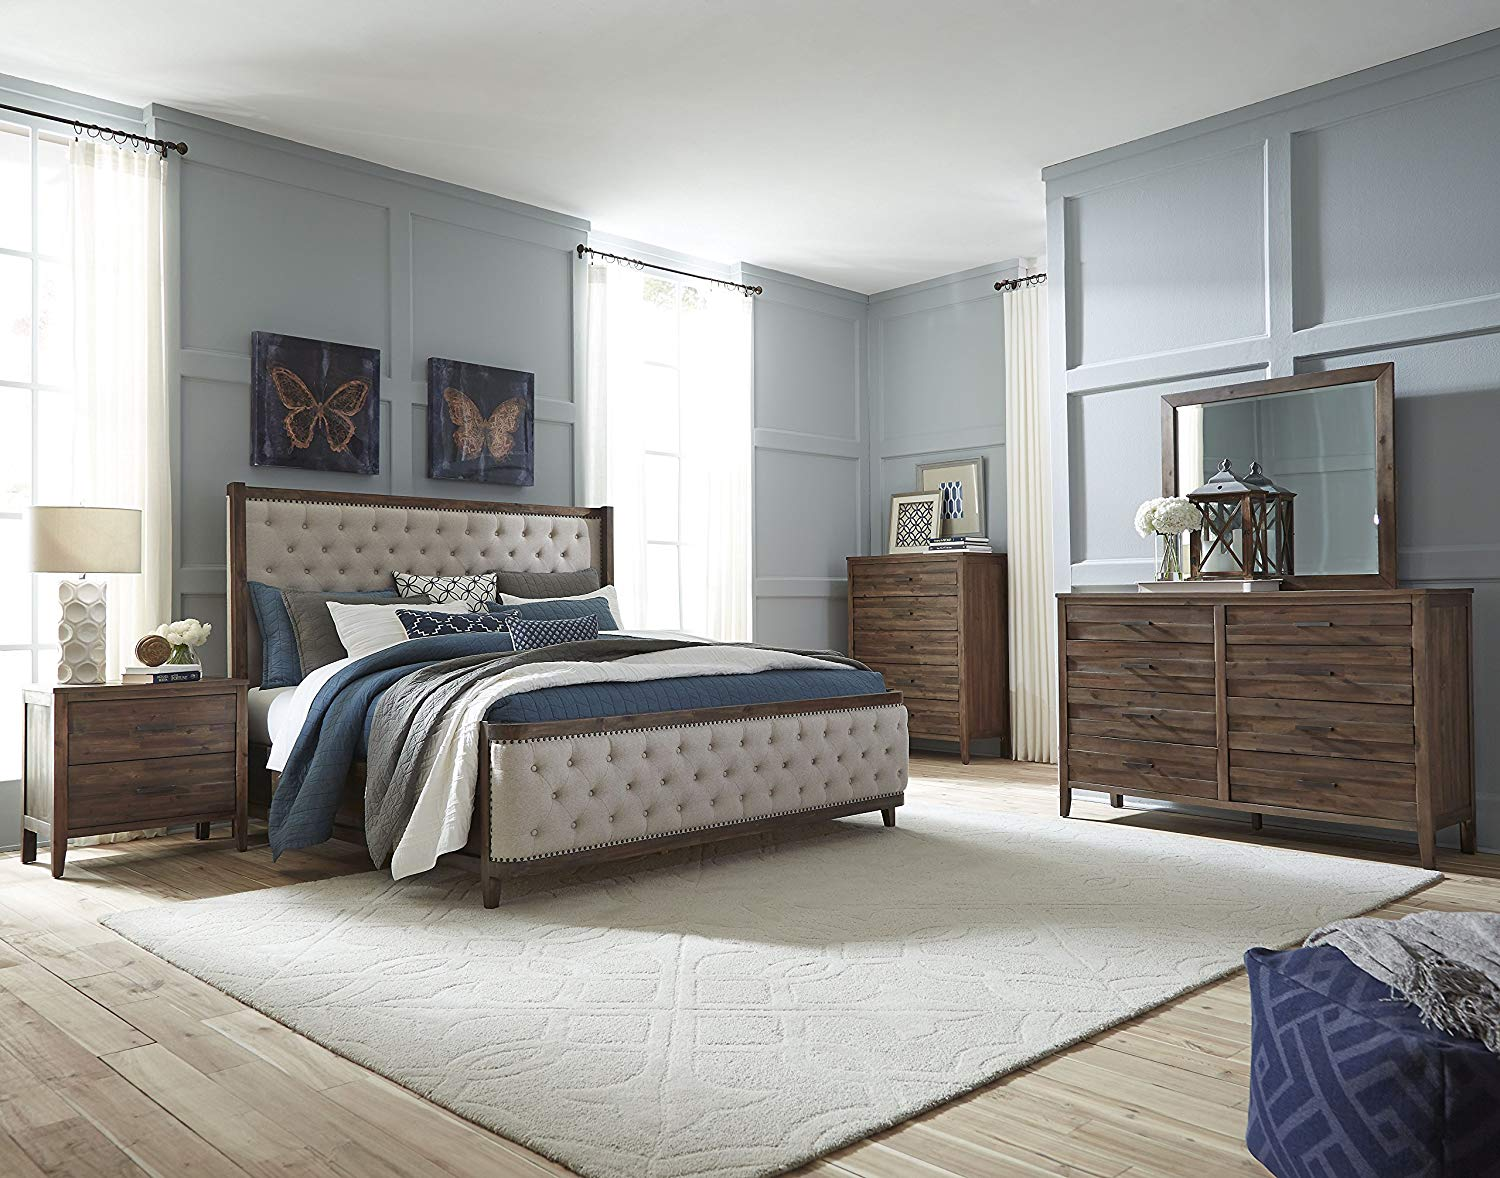 FurnitureMaxx Bryan Walnut Wood Finish Acacia solids, Acacia Veneer. King Upholstery Bed, Dresser, Mirror, Nightstand, Chest